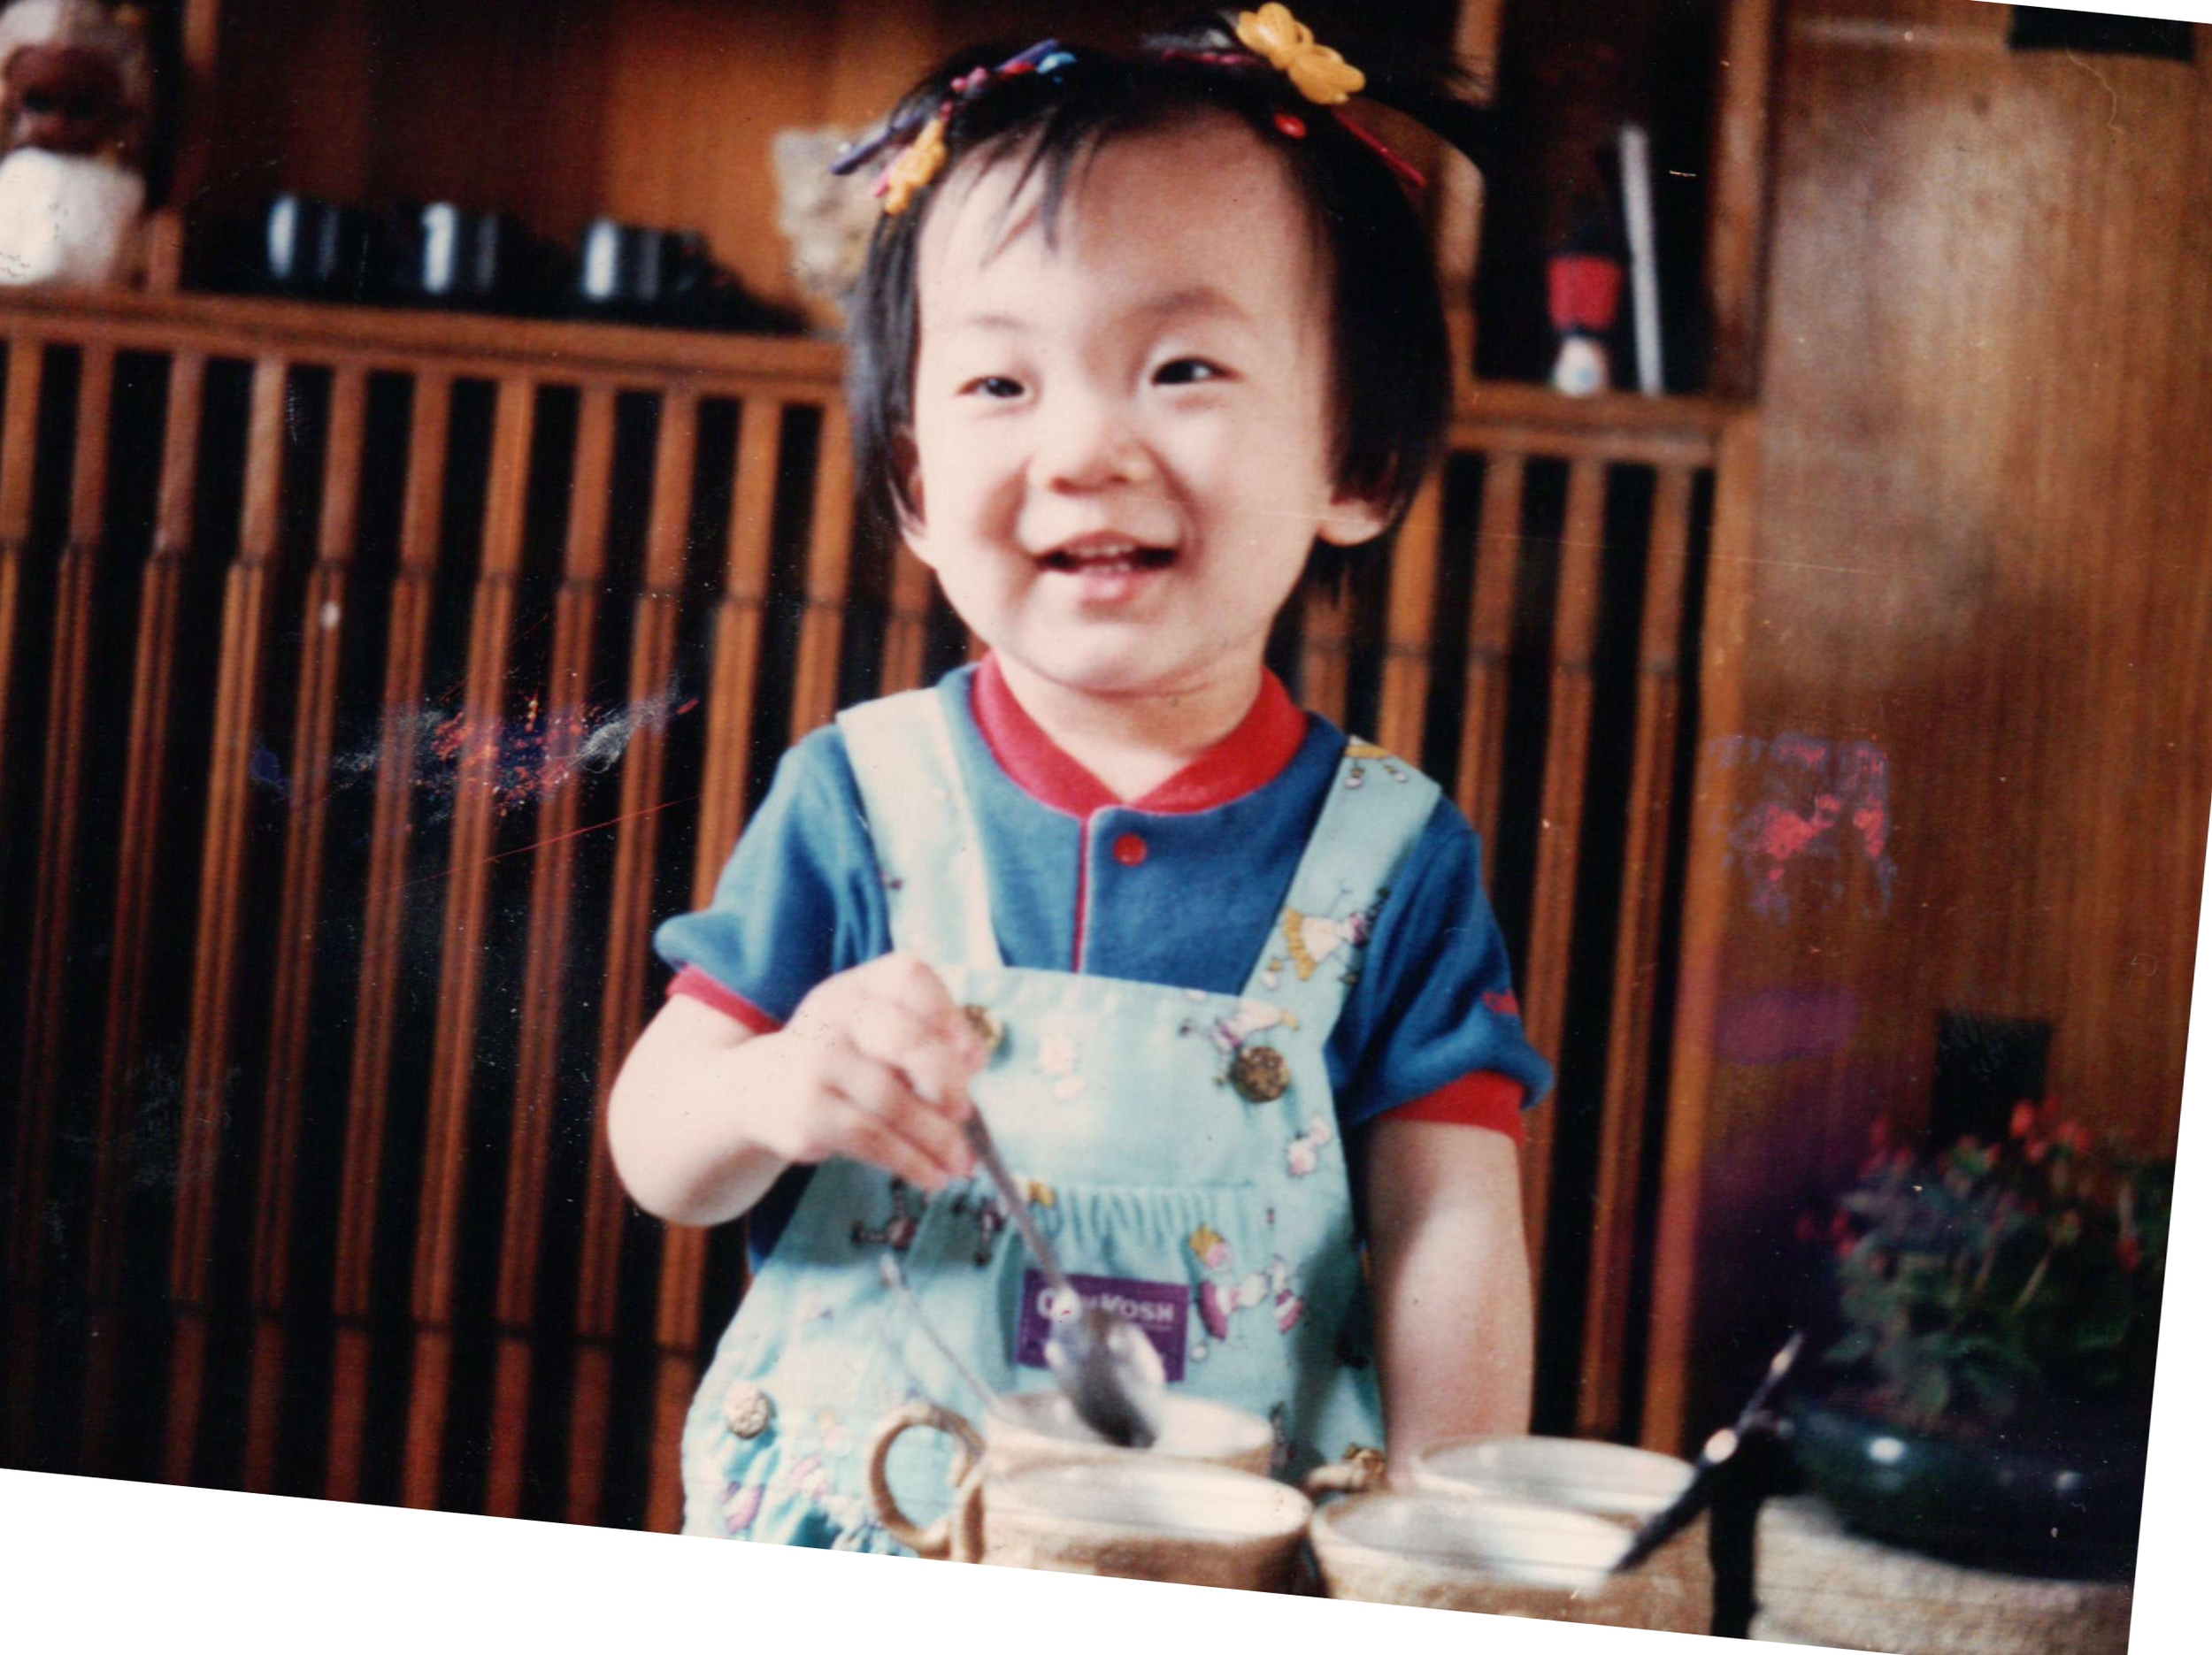 Pictured at age 2. I loved coffee way before I was allowed to drink it!